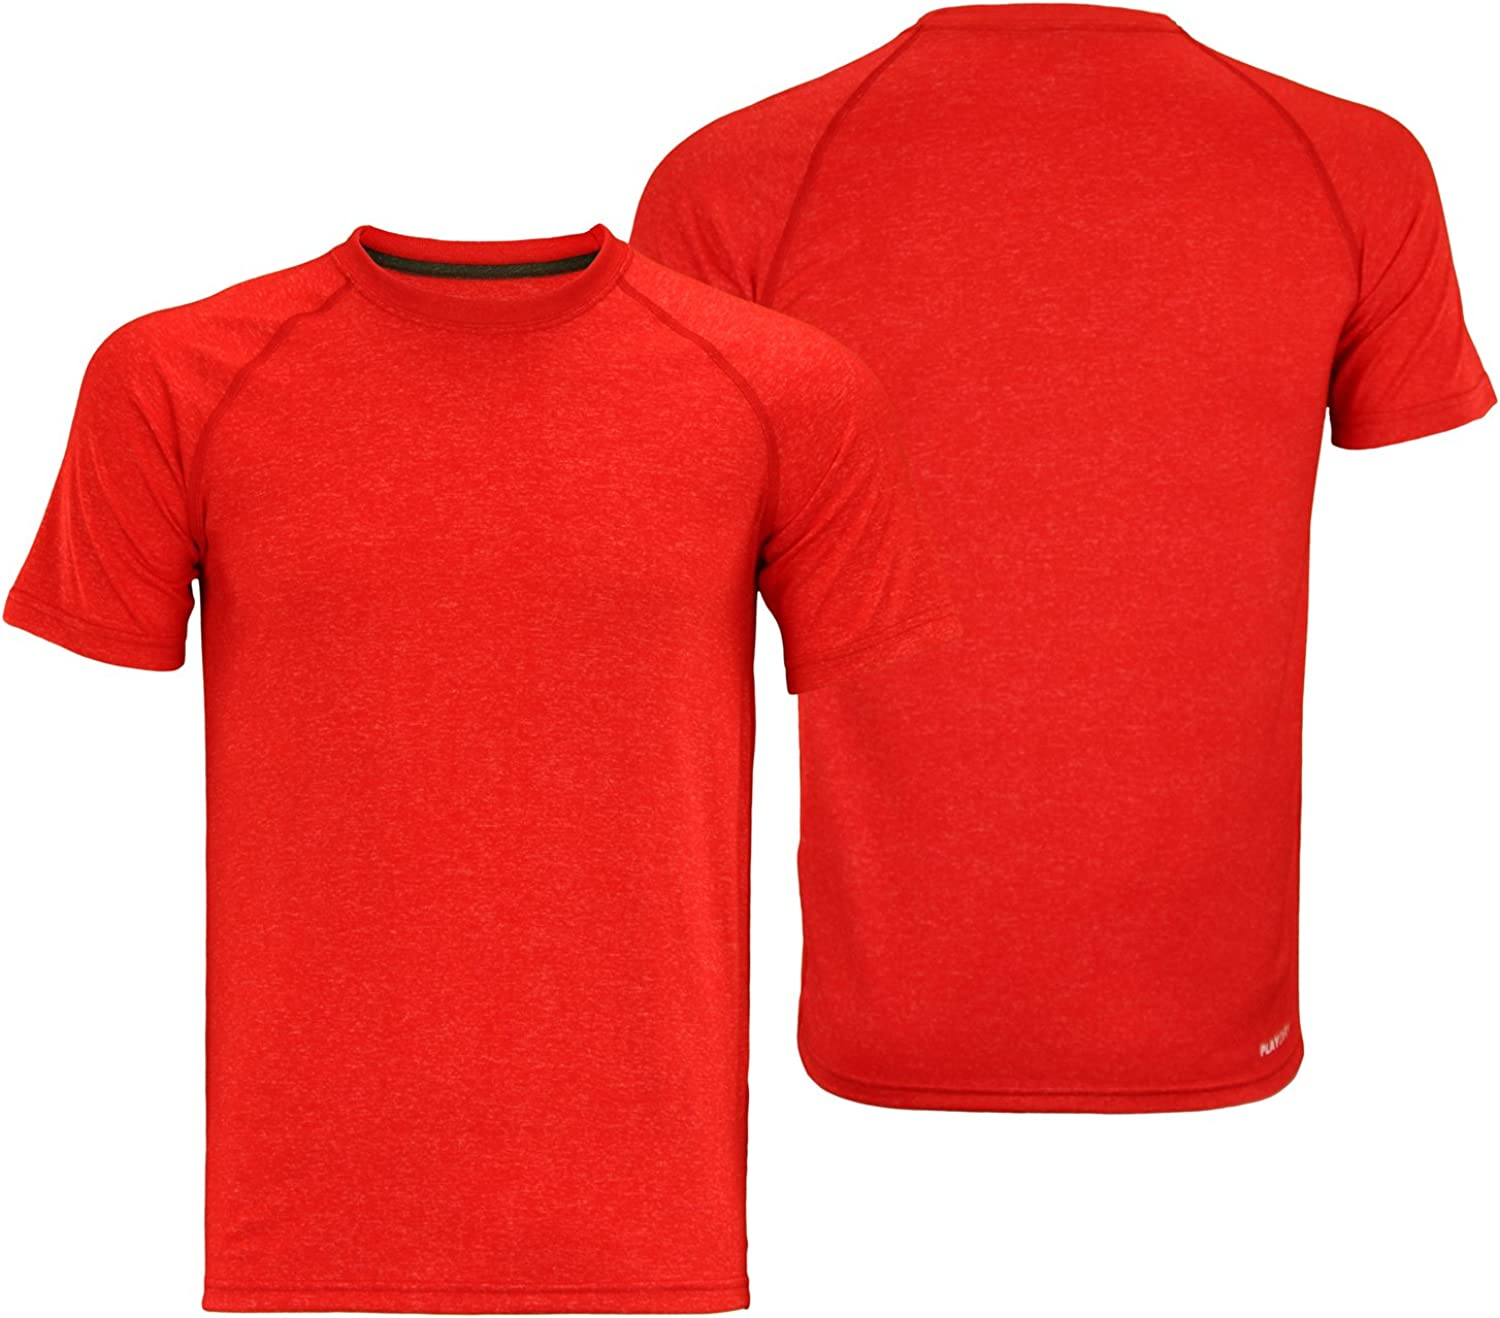 Reebok Men's Performance Short Sleeve Ultimate Tee, Color Variation